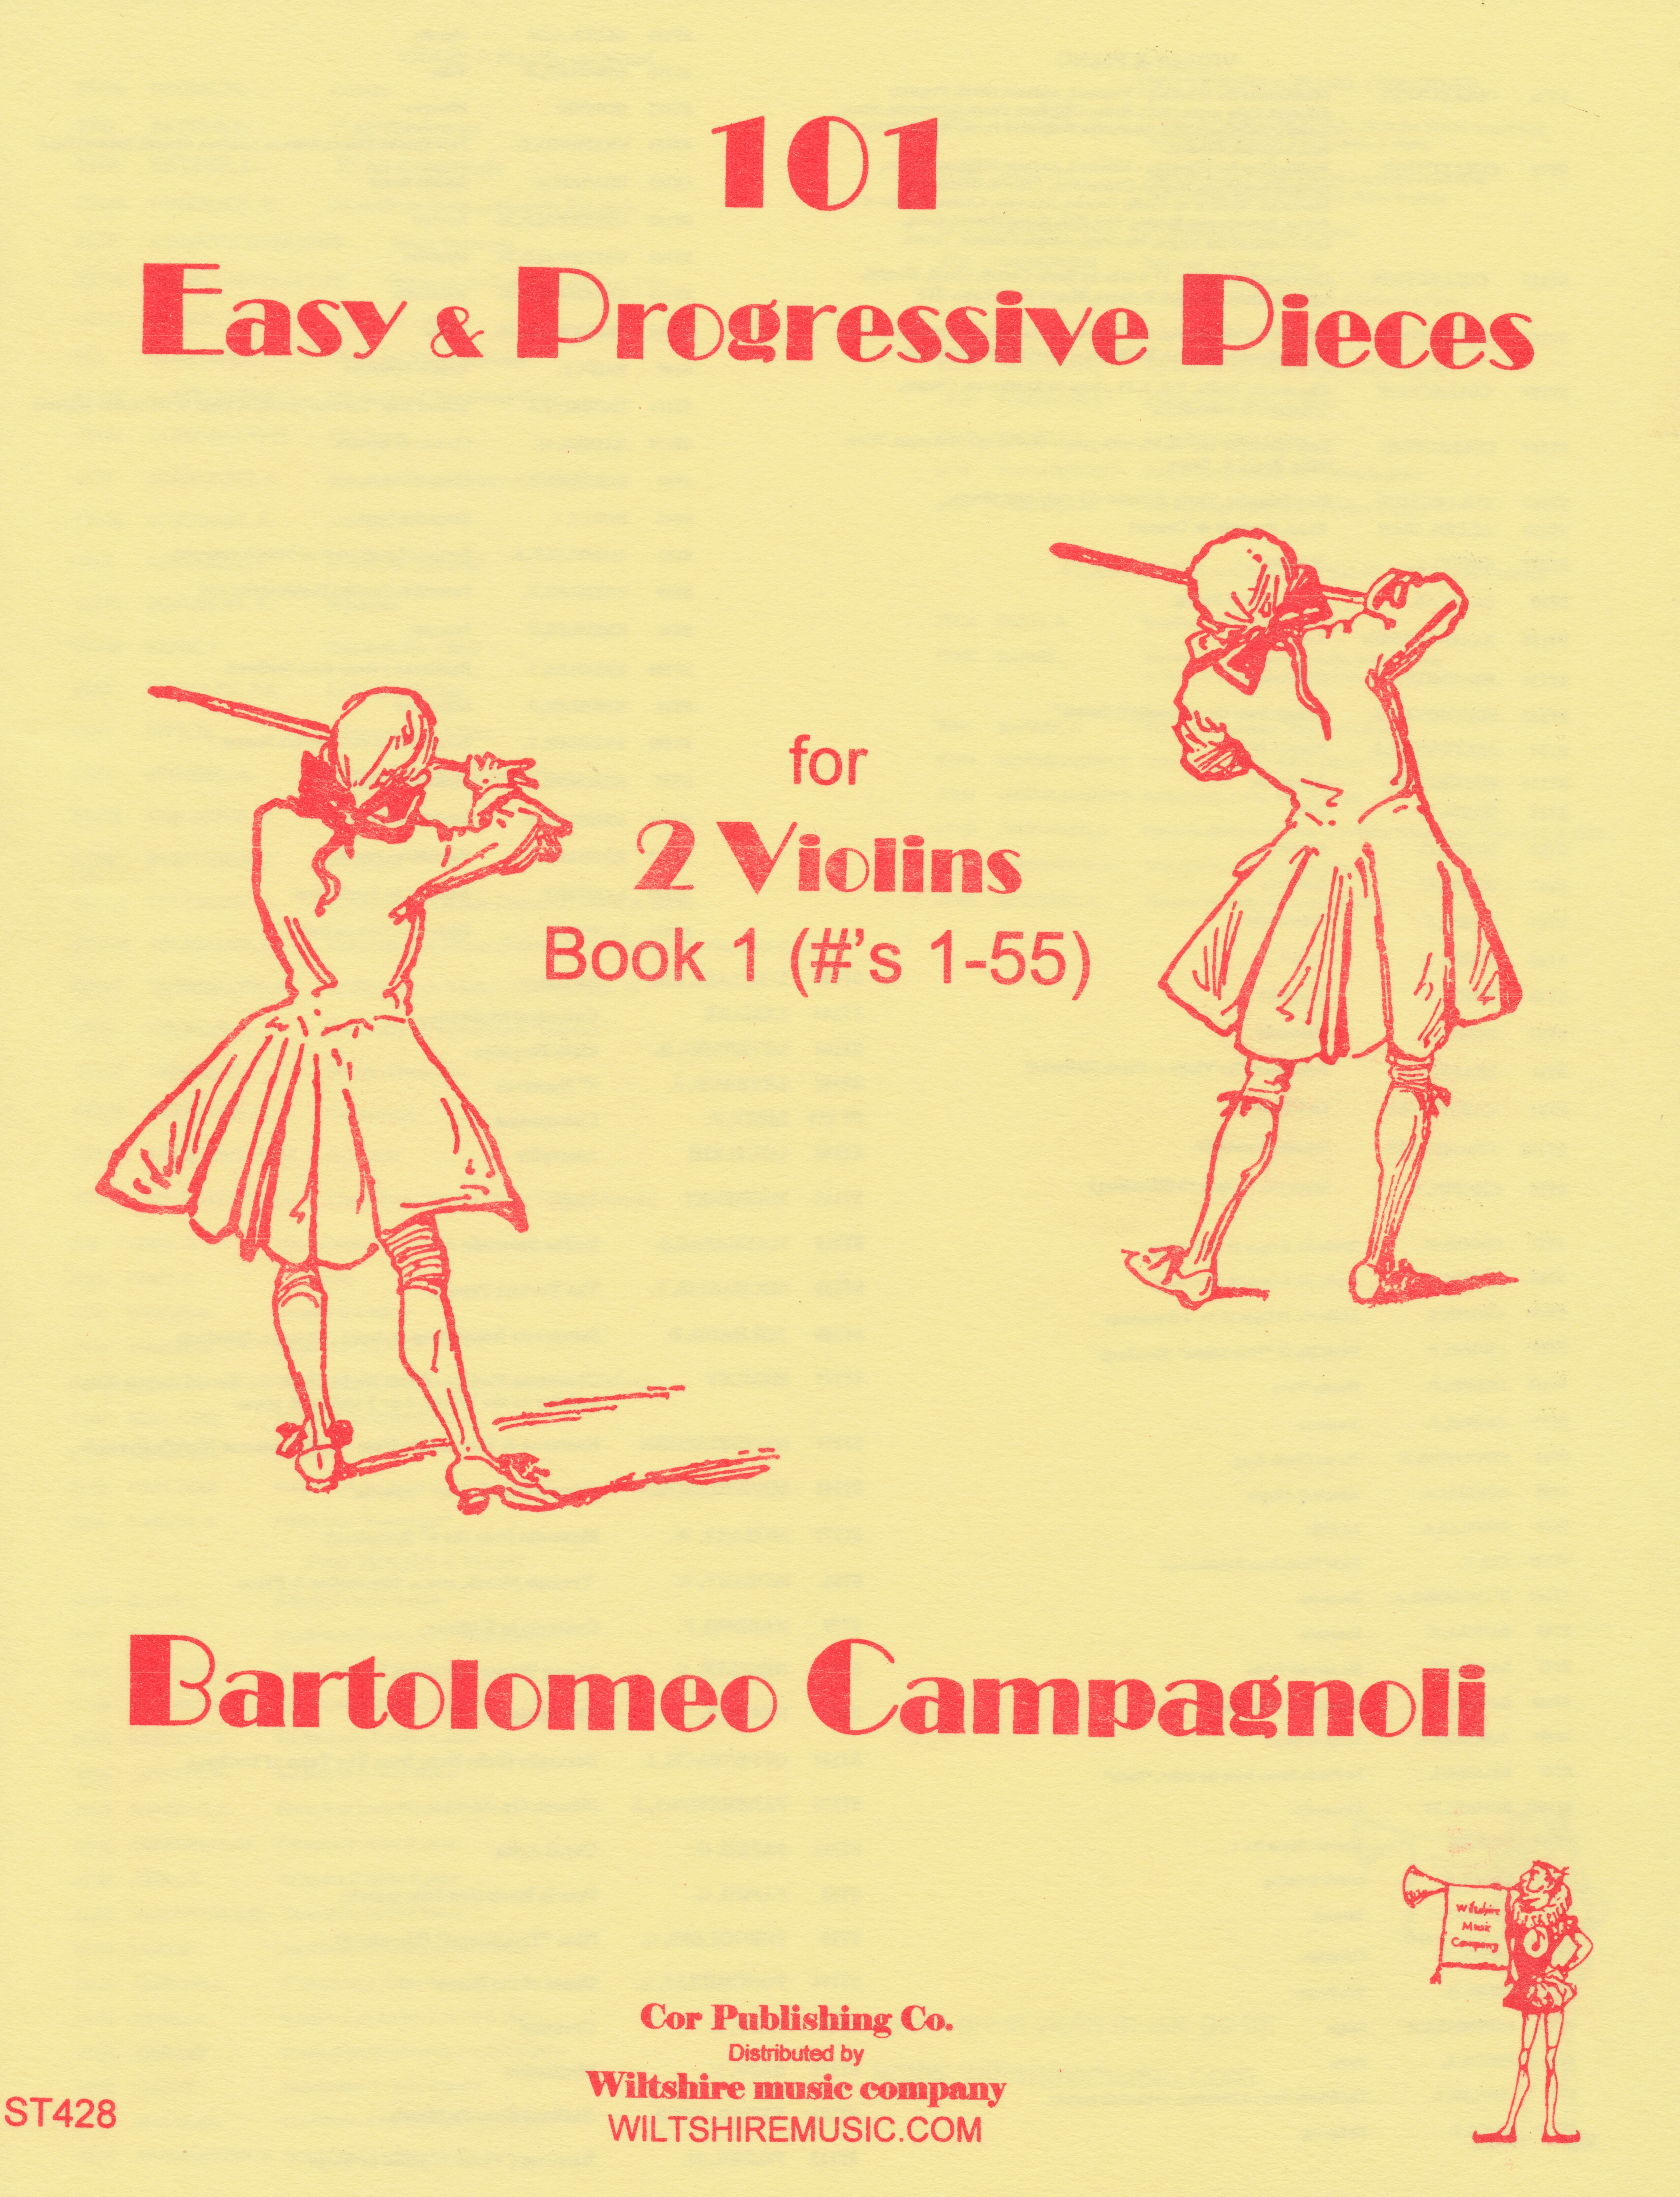 101 Progressive Pieces, Book 1 , B. Campagnoli, 2 violins